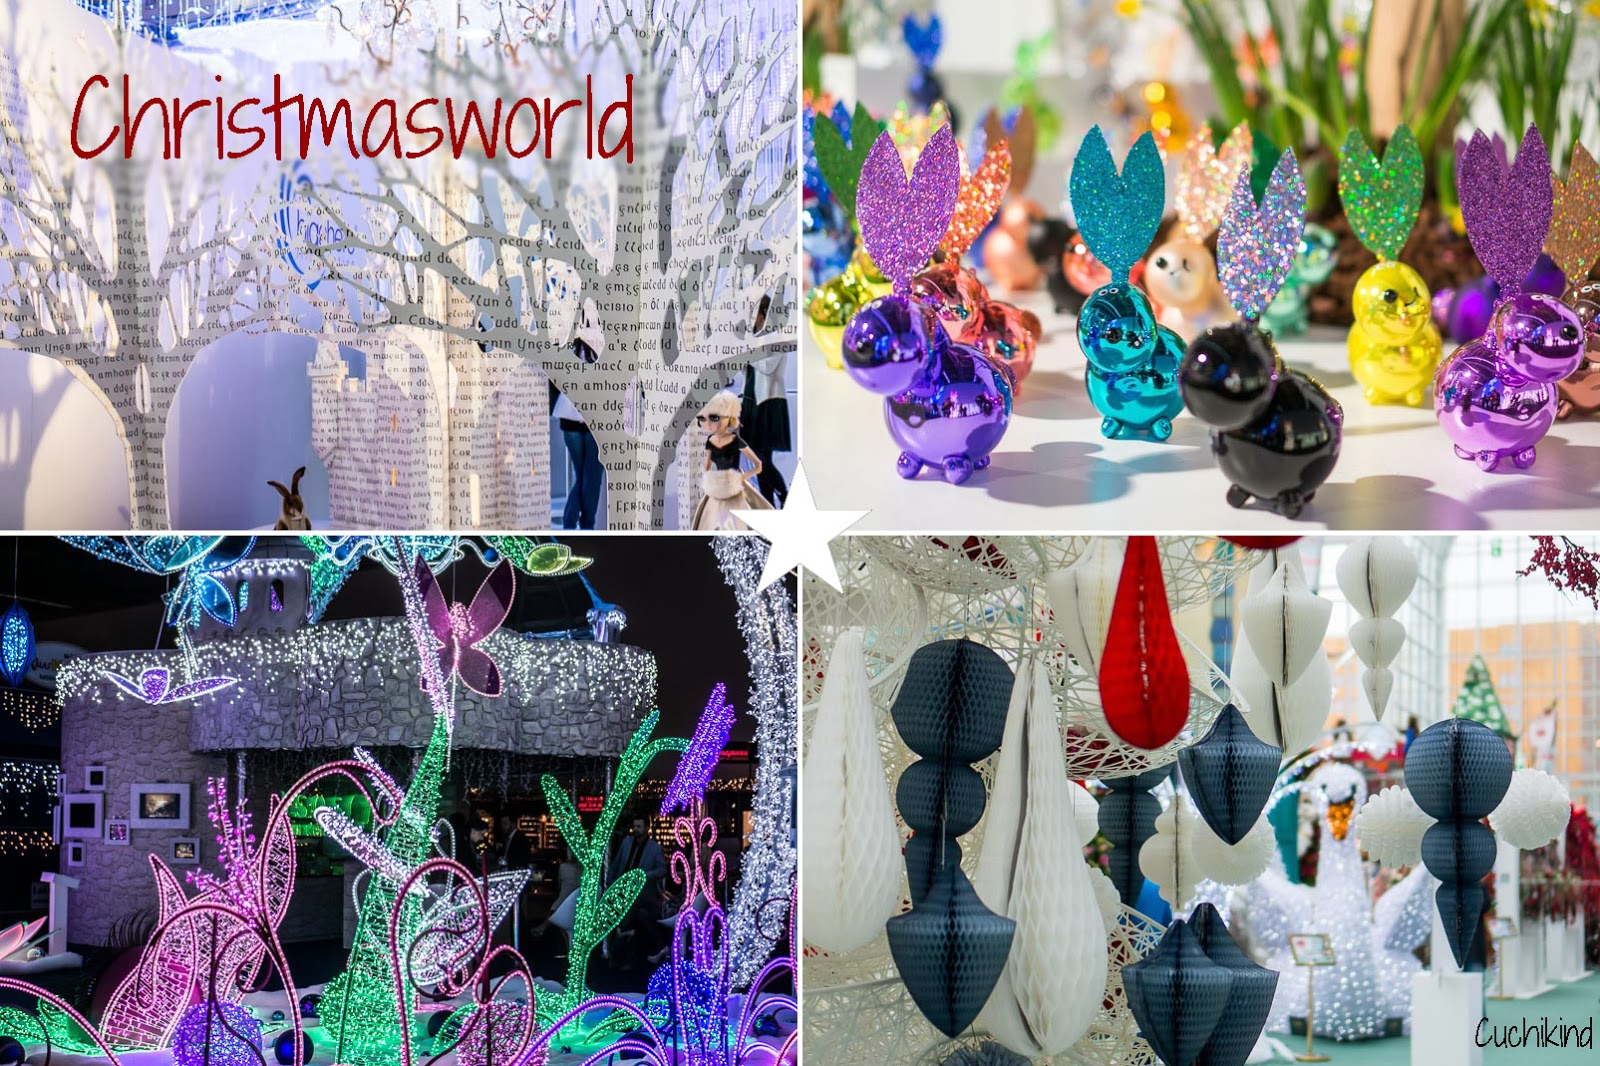 Christmasworld 2014